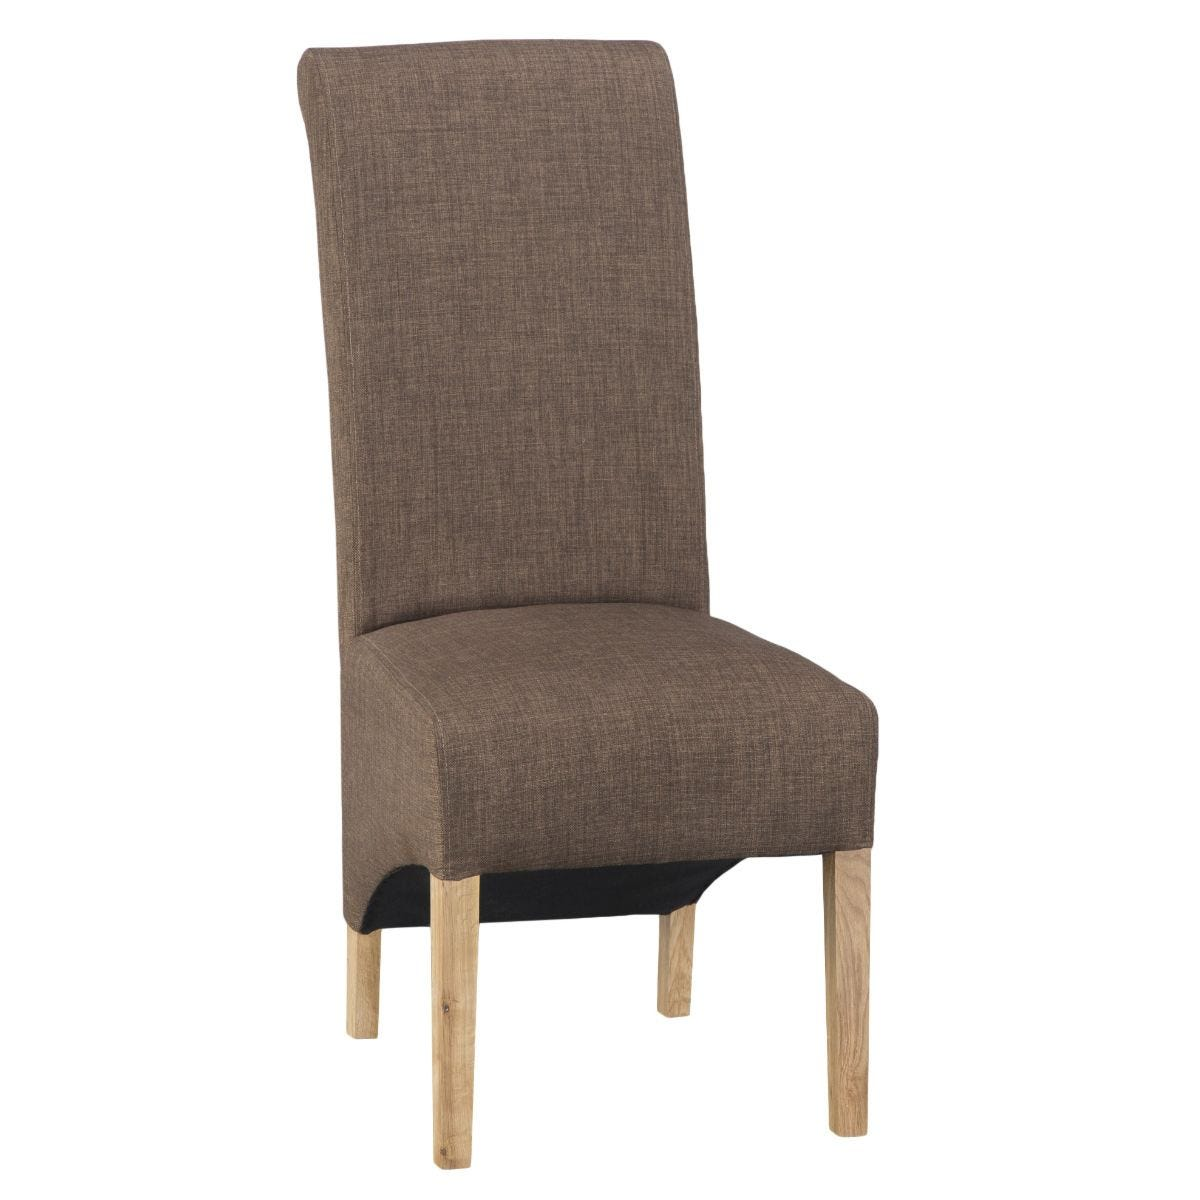 Set of 2 Scroll Back Luxury Dining Chairs - Cinnamon